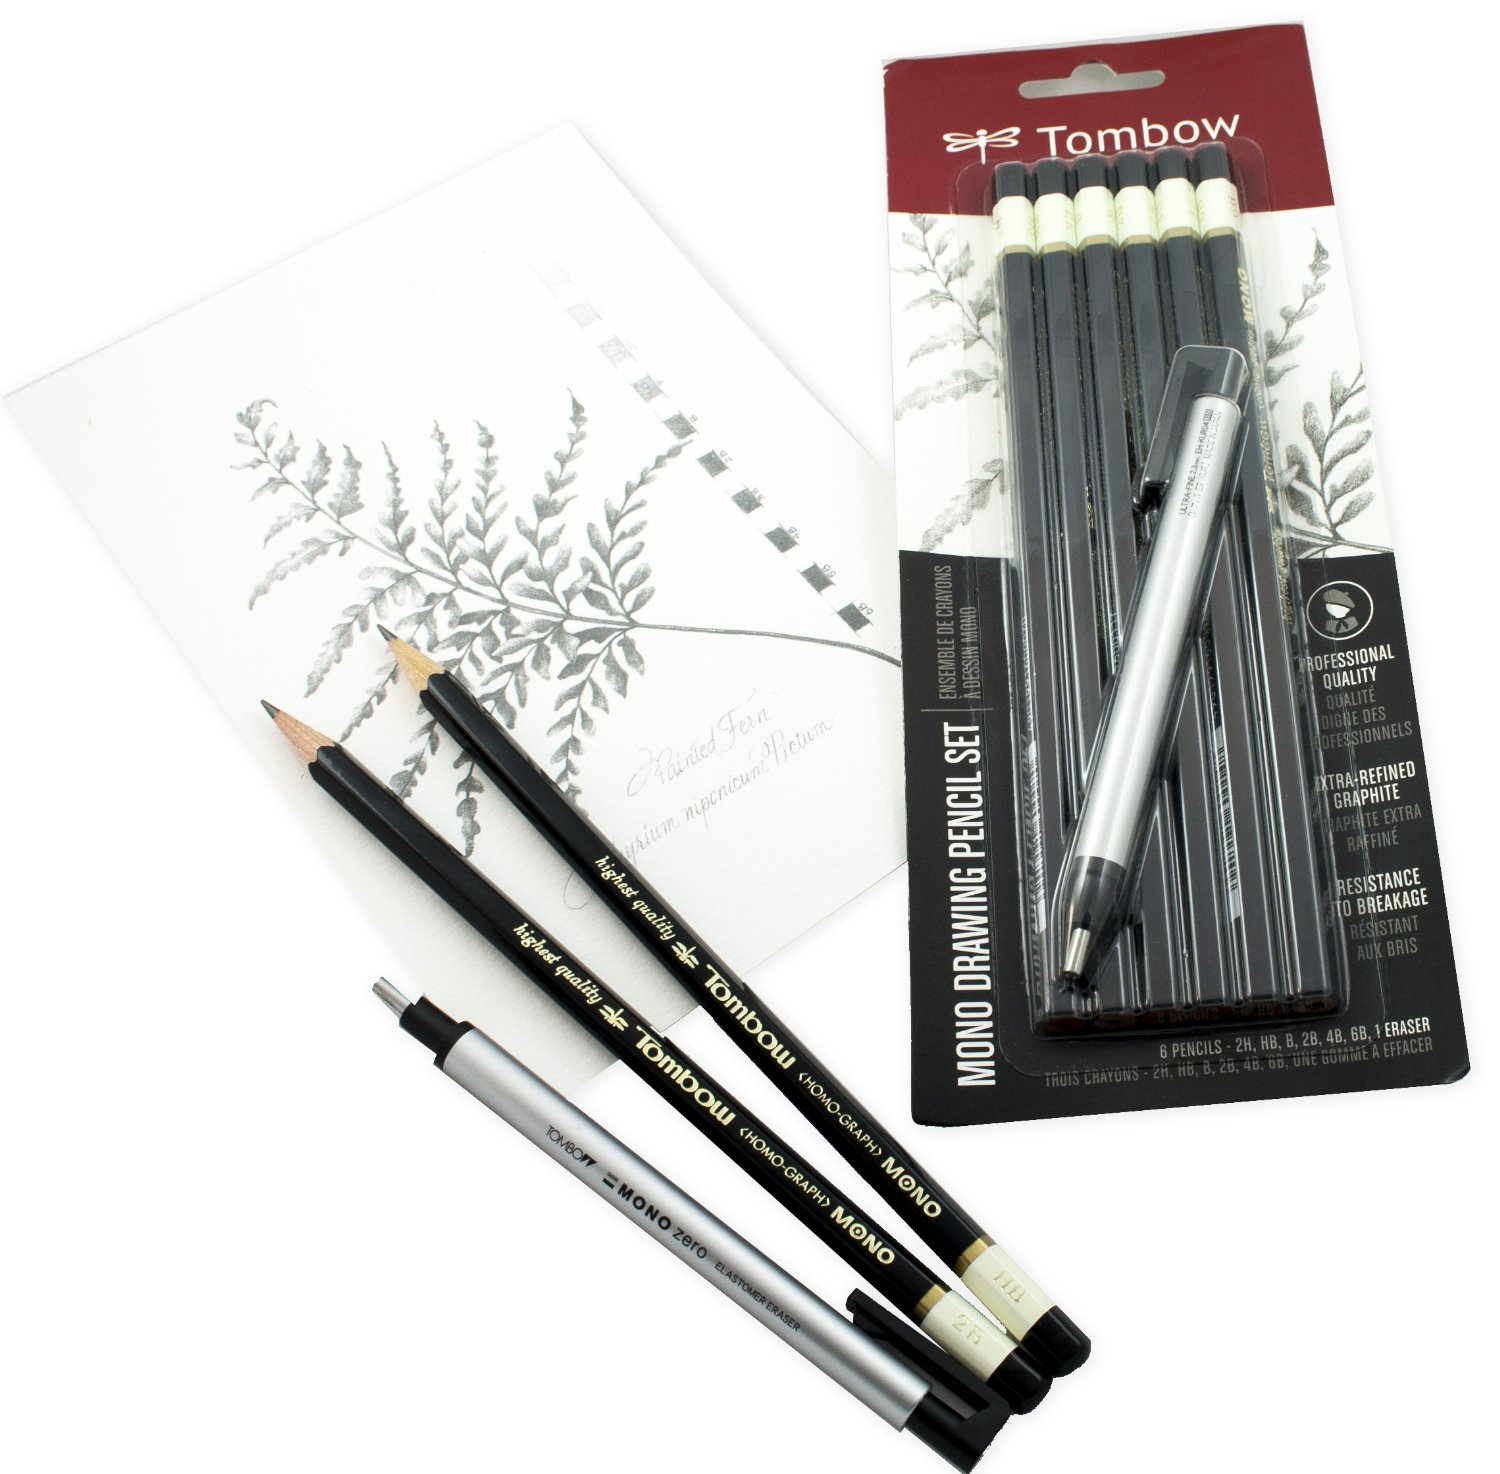 The best drawing pencils for artists tombow pencil 6pak for artists